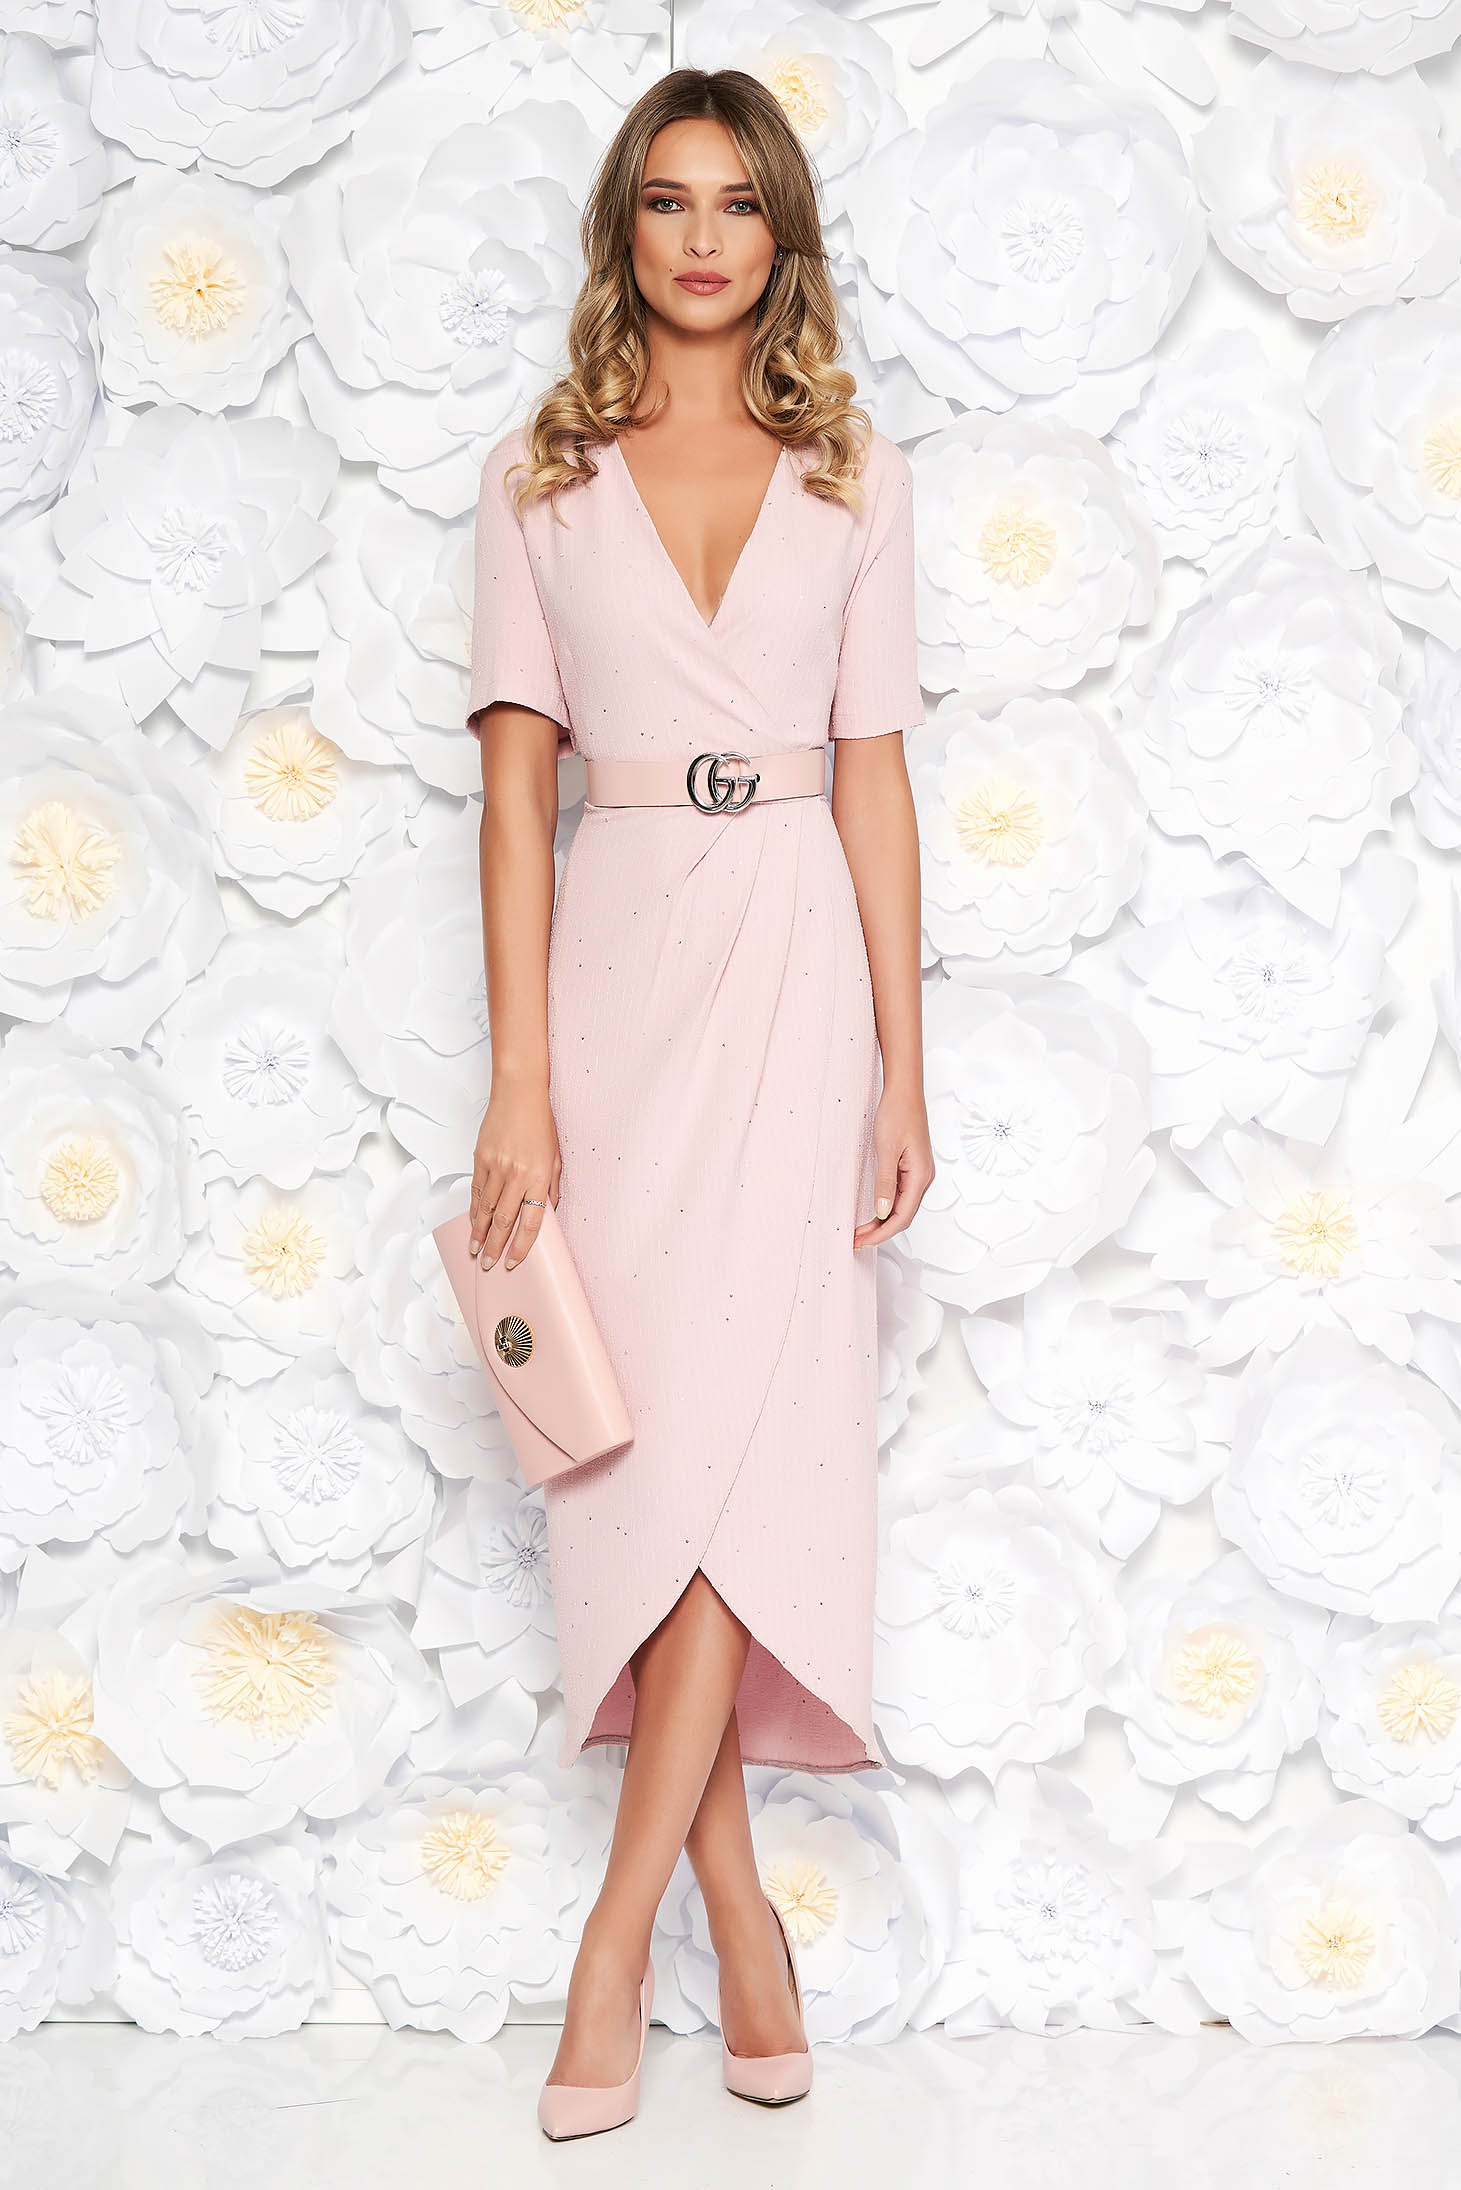 Rosa elegant dress slightly elastic fabric with sequin embellished details accessorized with belt with tented cut